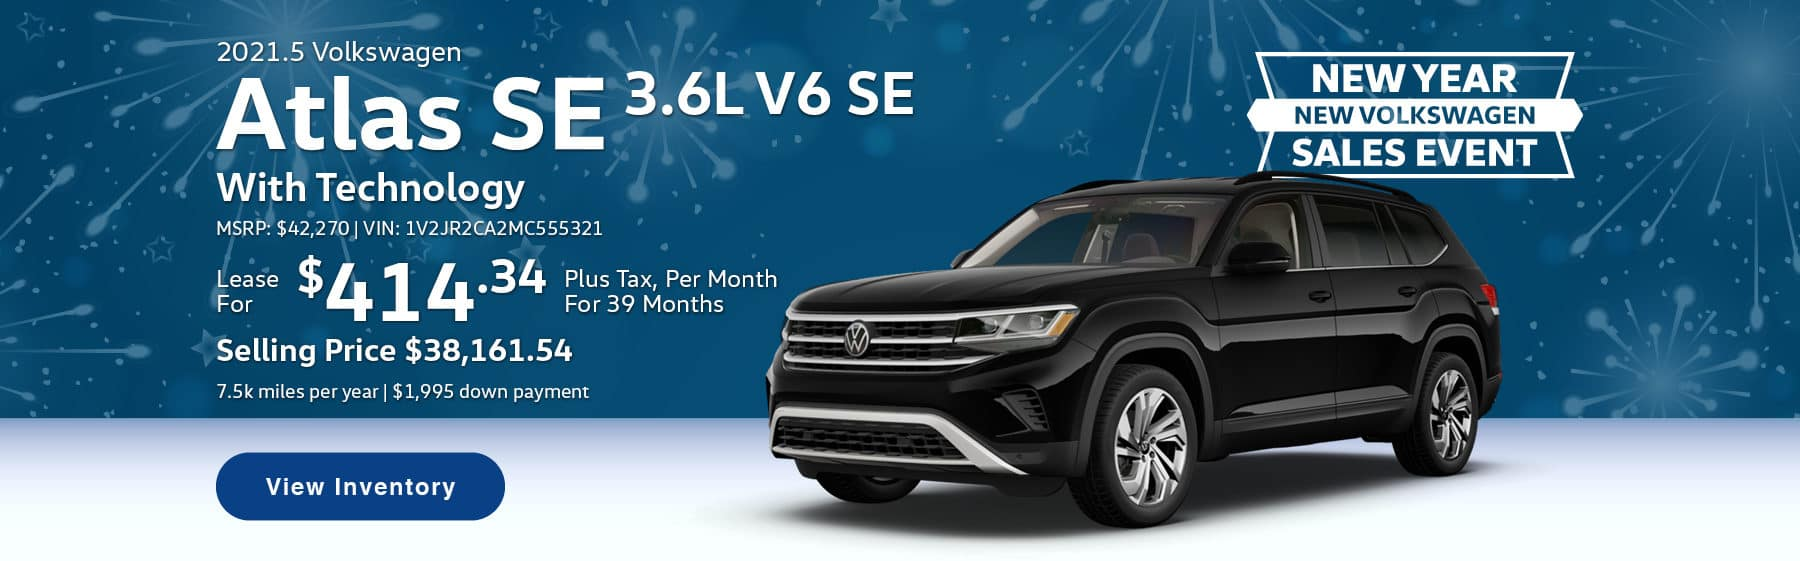 Lease the 2021.5 Atlas Cross Sport 3.6L V6 SE With Technology for $414.34 per month, plus tax for 39 months. Selling price is $38,161.54. 7,500 miles per year. $1,995 down payment. $42,270 MSRP. Vin #: 1V2JR2CA2MC555321.